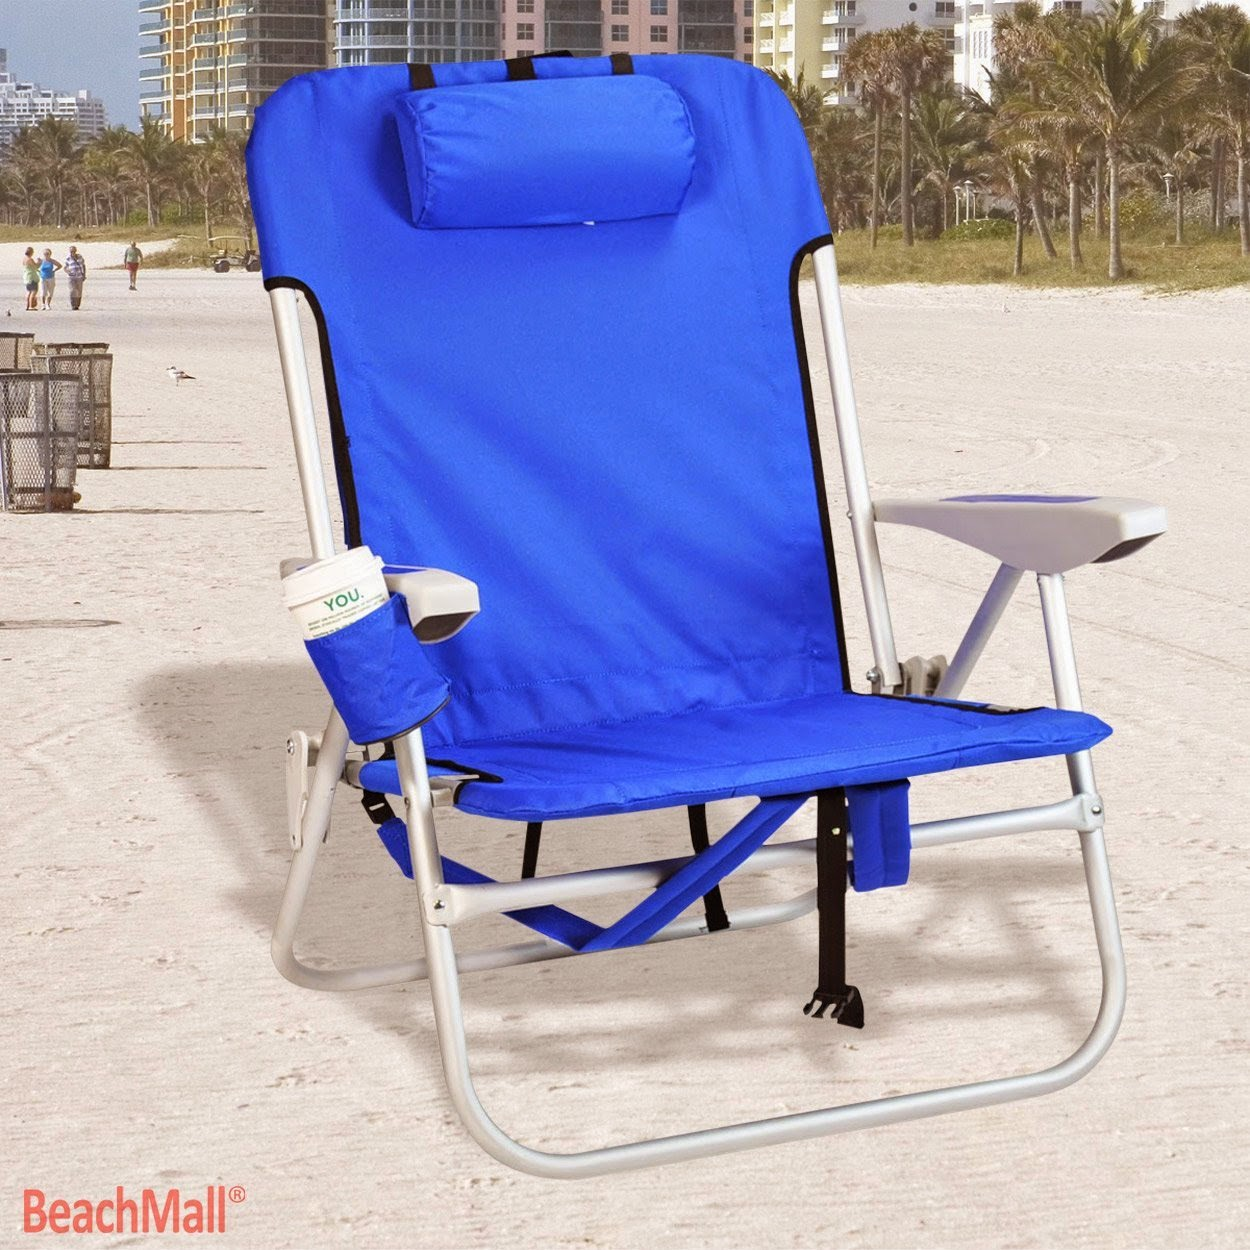 Best Inexpensive Beach Chairs 24 Hour Chair Cheap Backpack